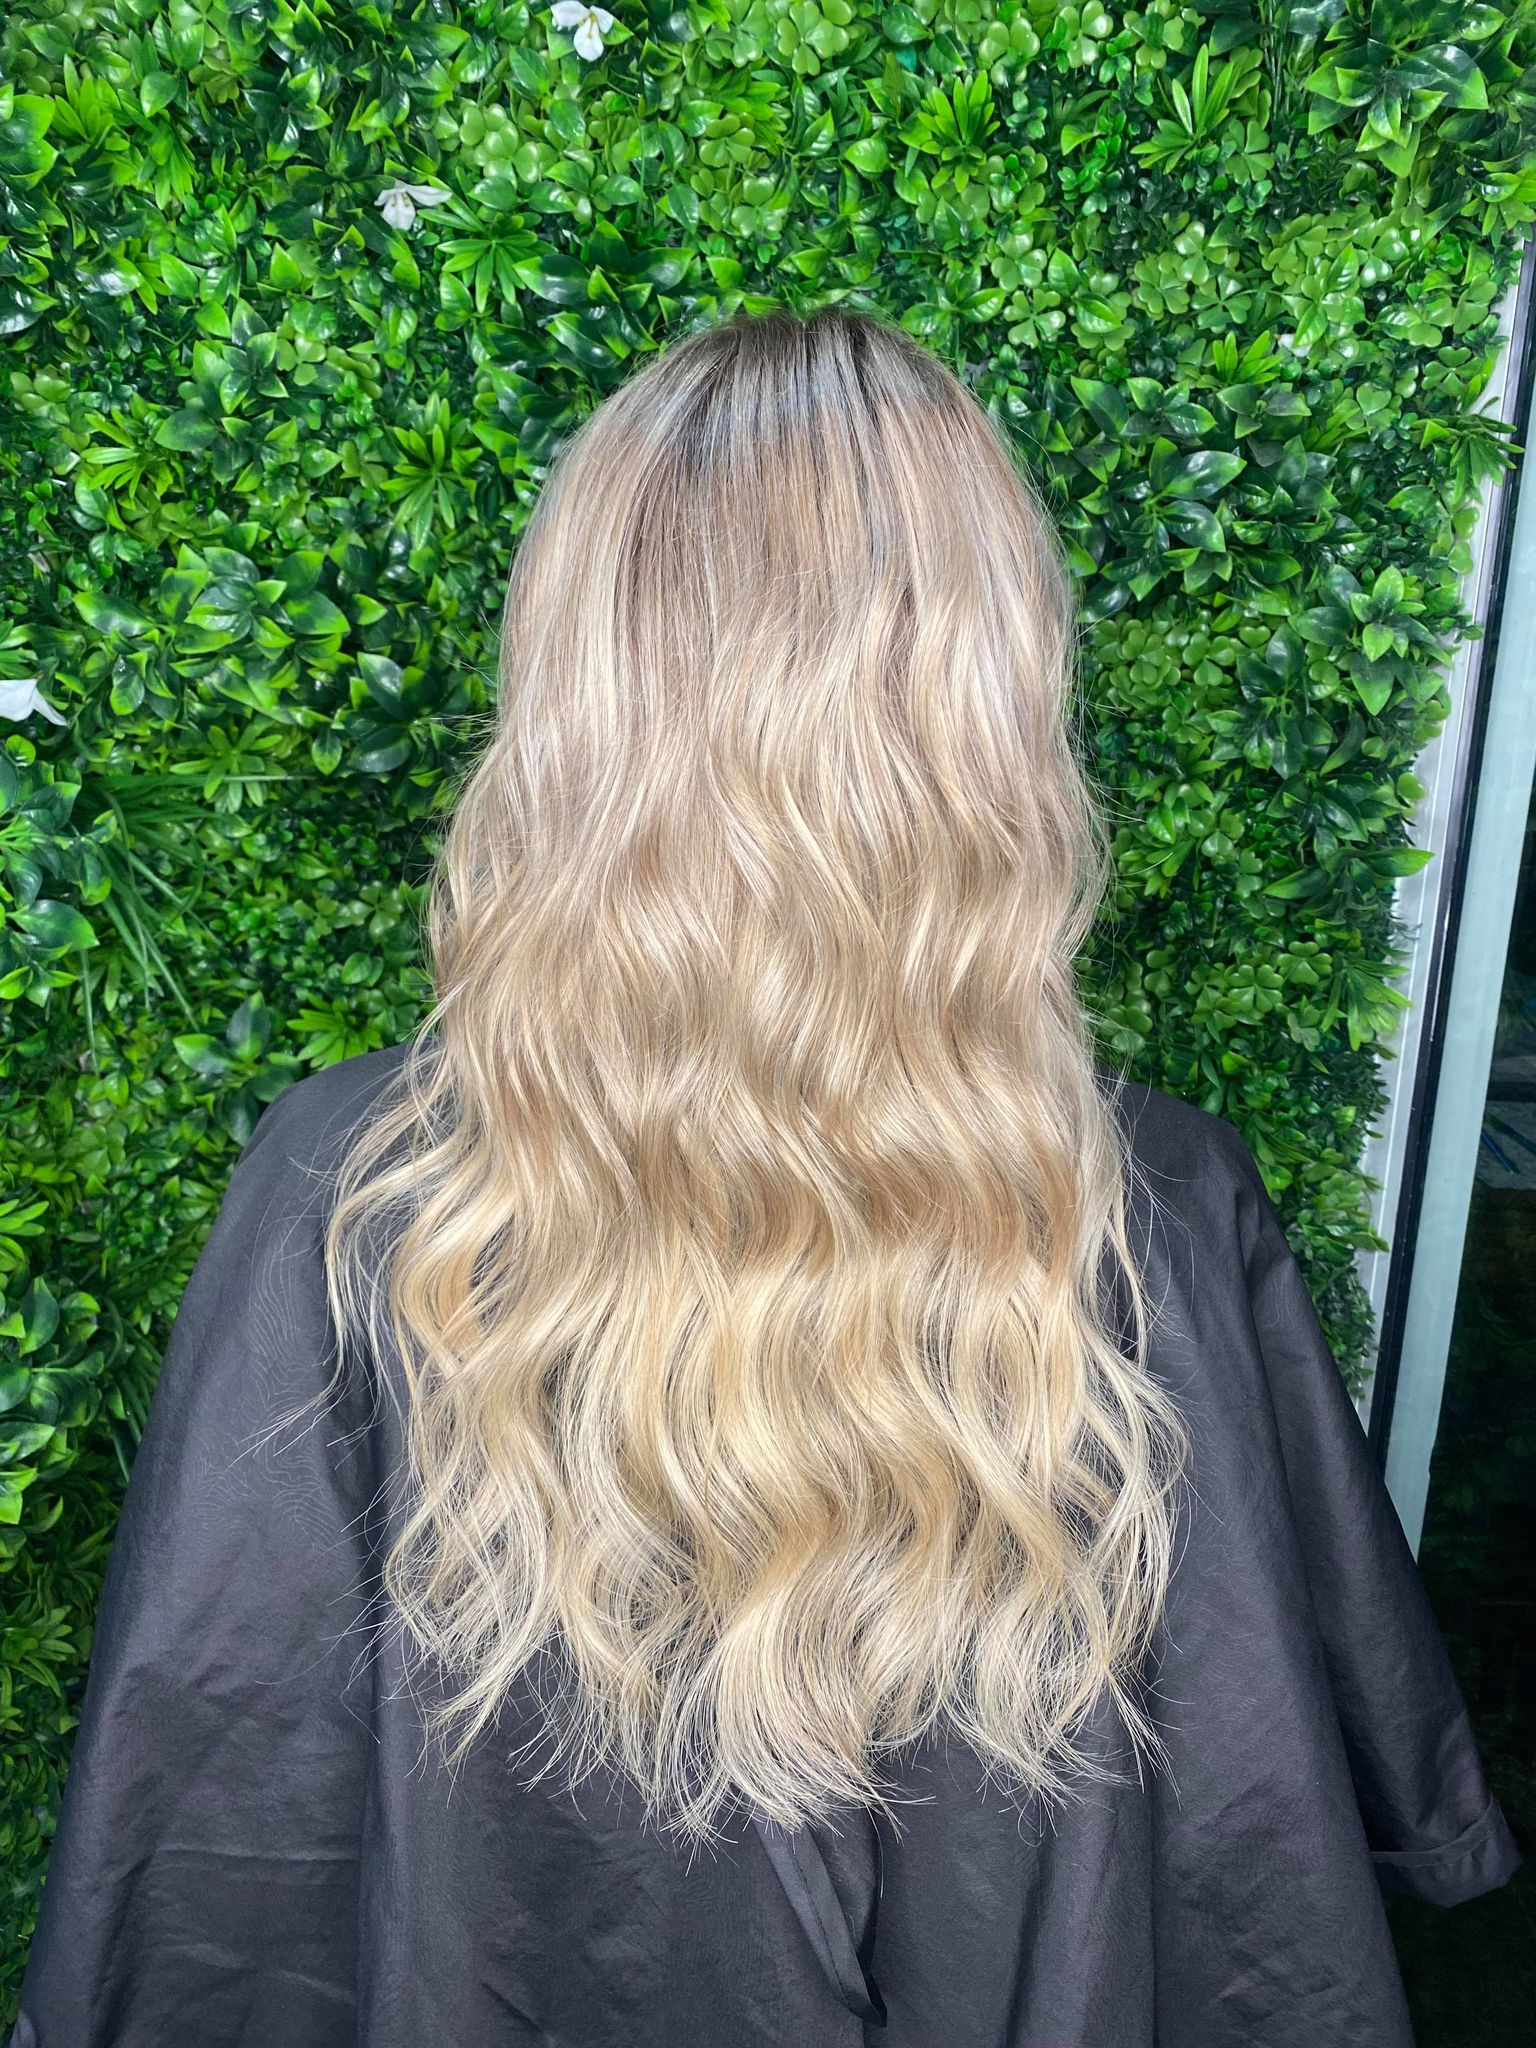 jamie-full-head-stacked-up-blonde-foils-Copy